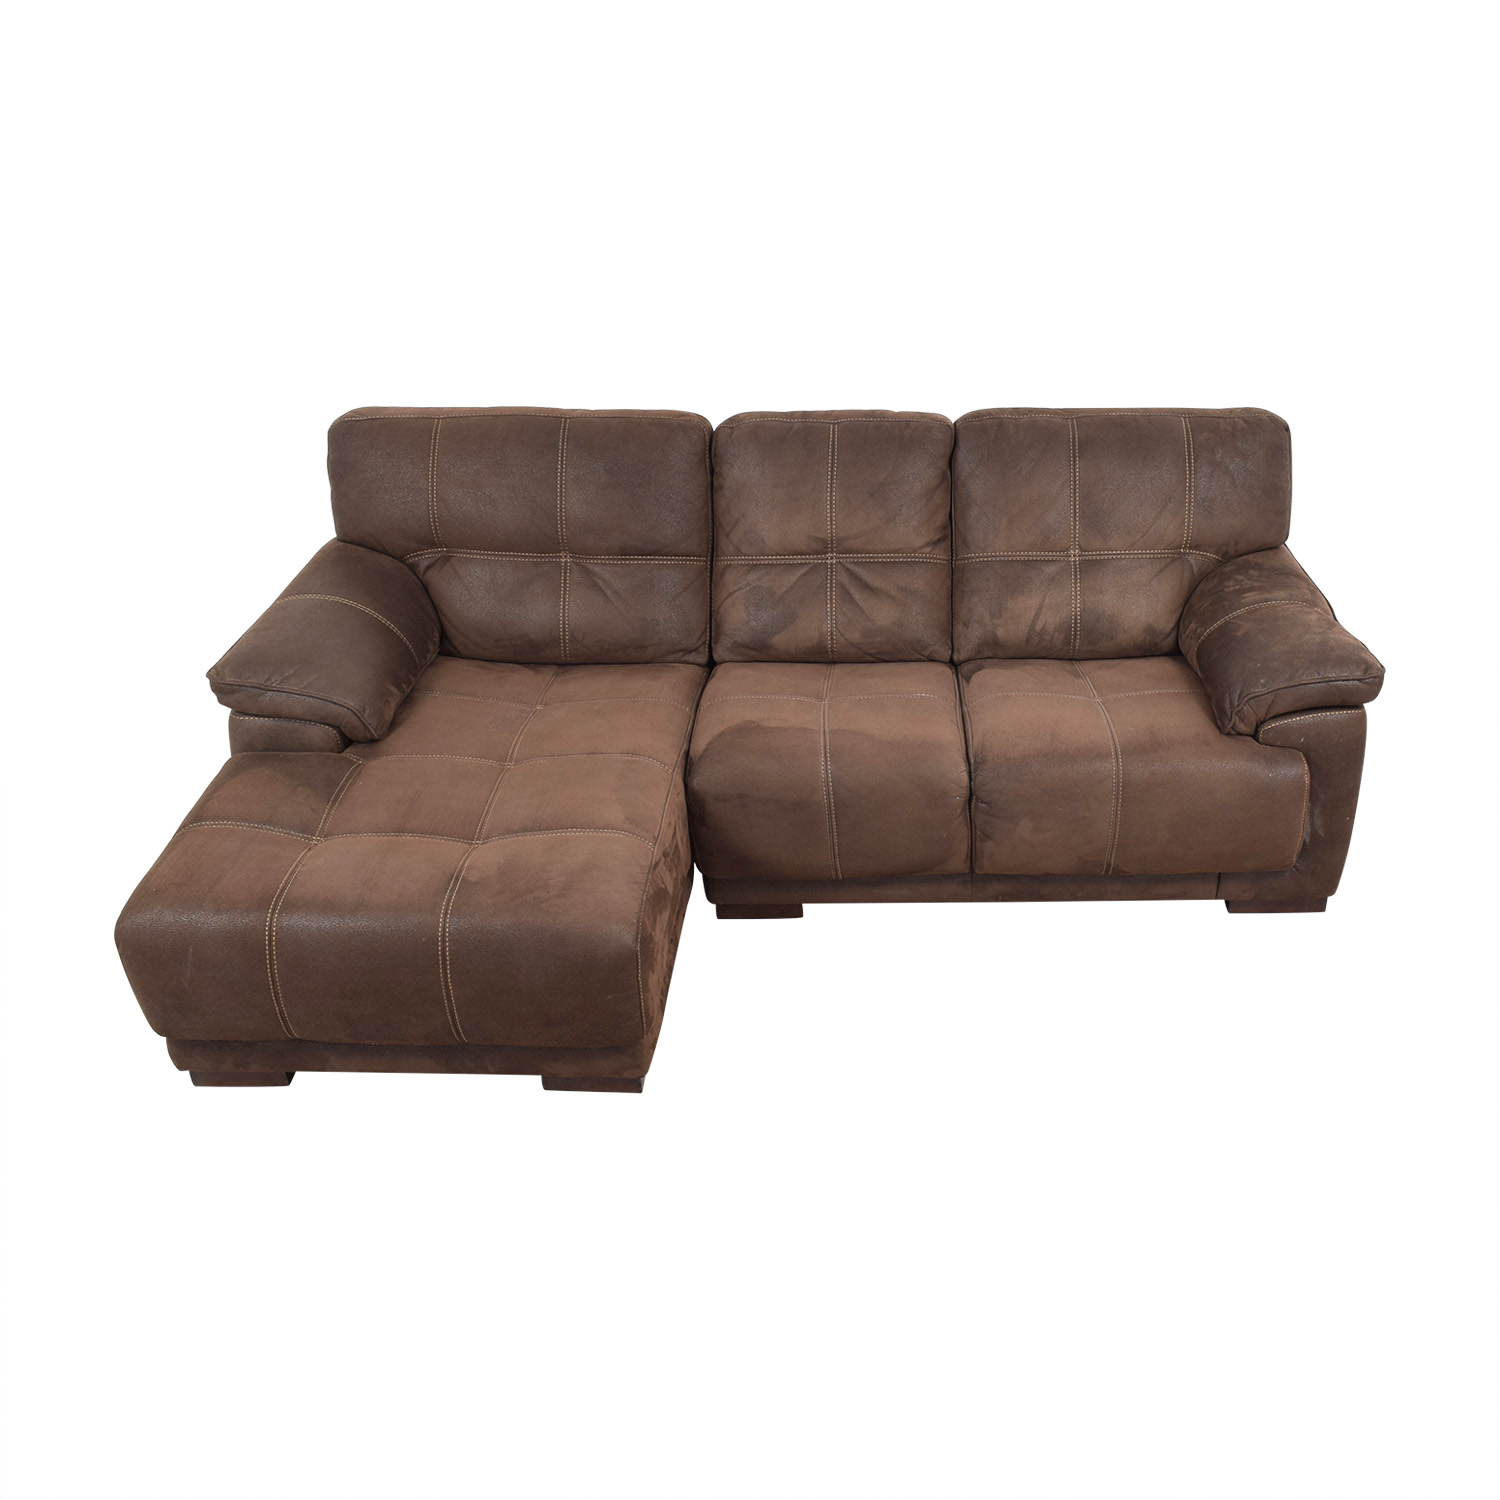 Raymour & Flanigan Brown Microfiber Chaise Sectional / Sofas